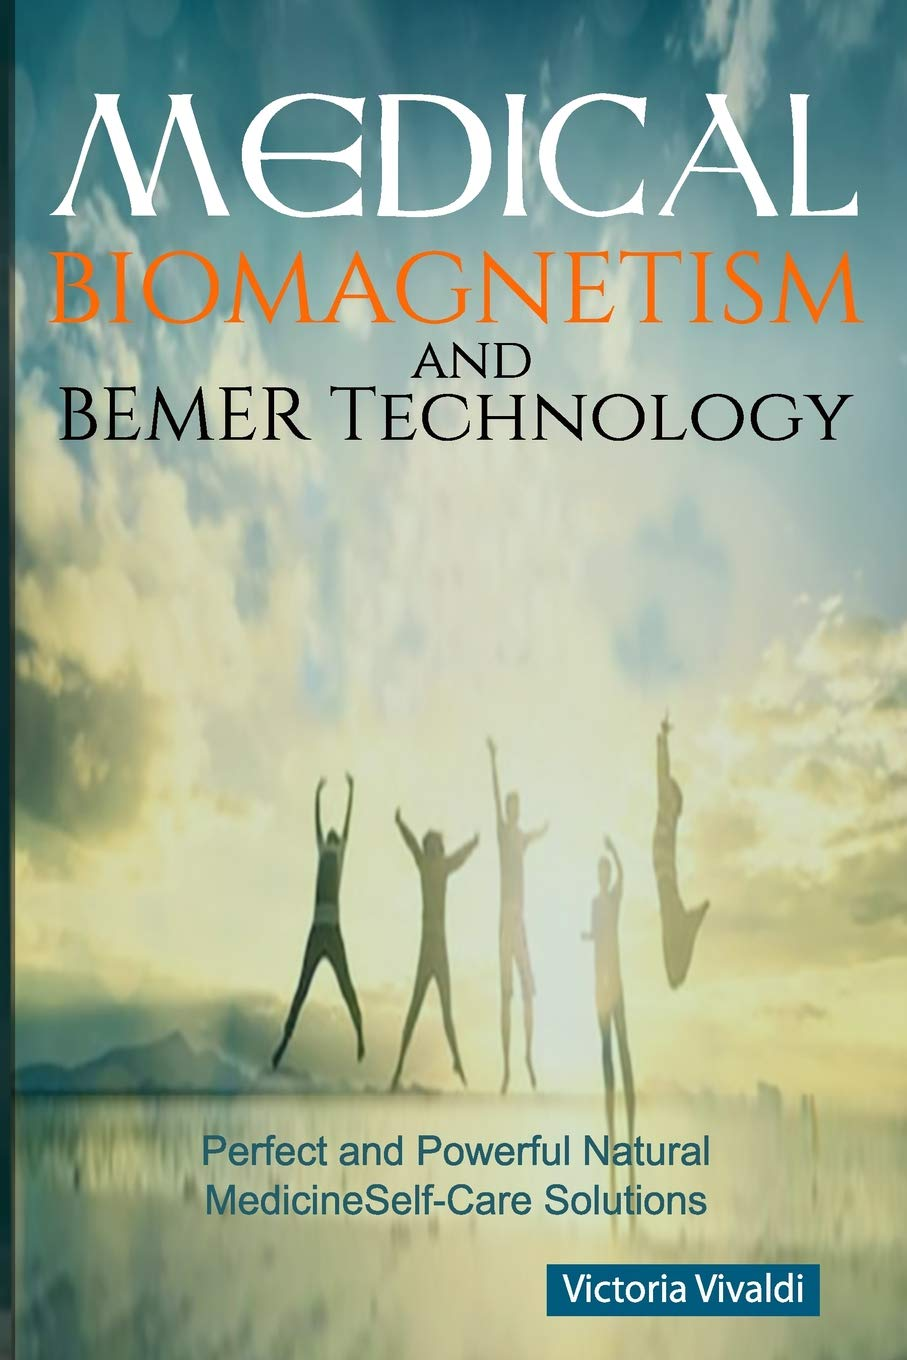 Medical Biomagnetism and BEMER Technology: Perfect and